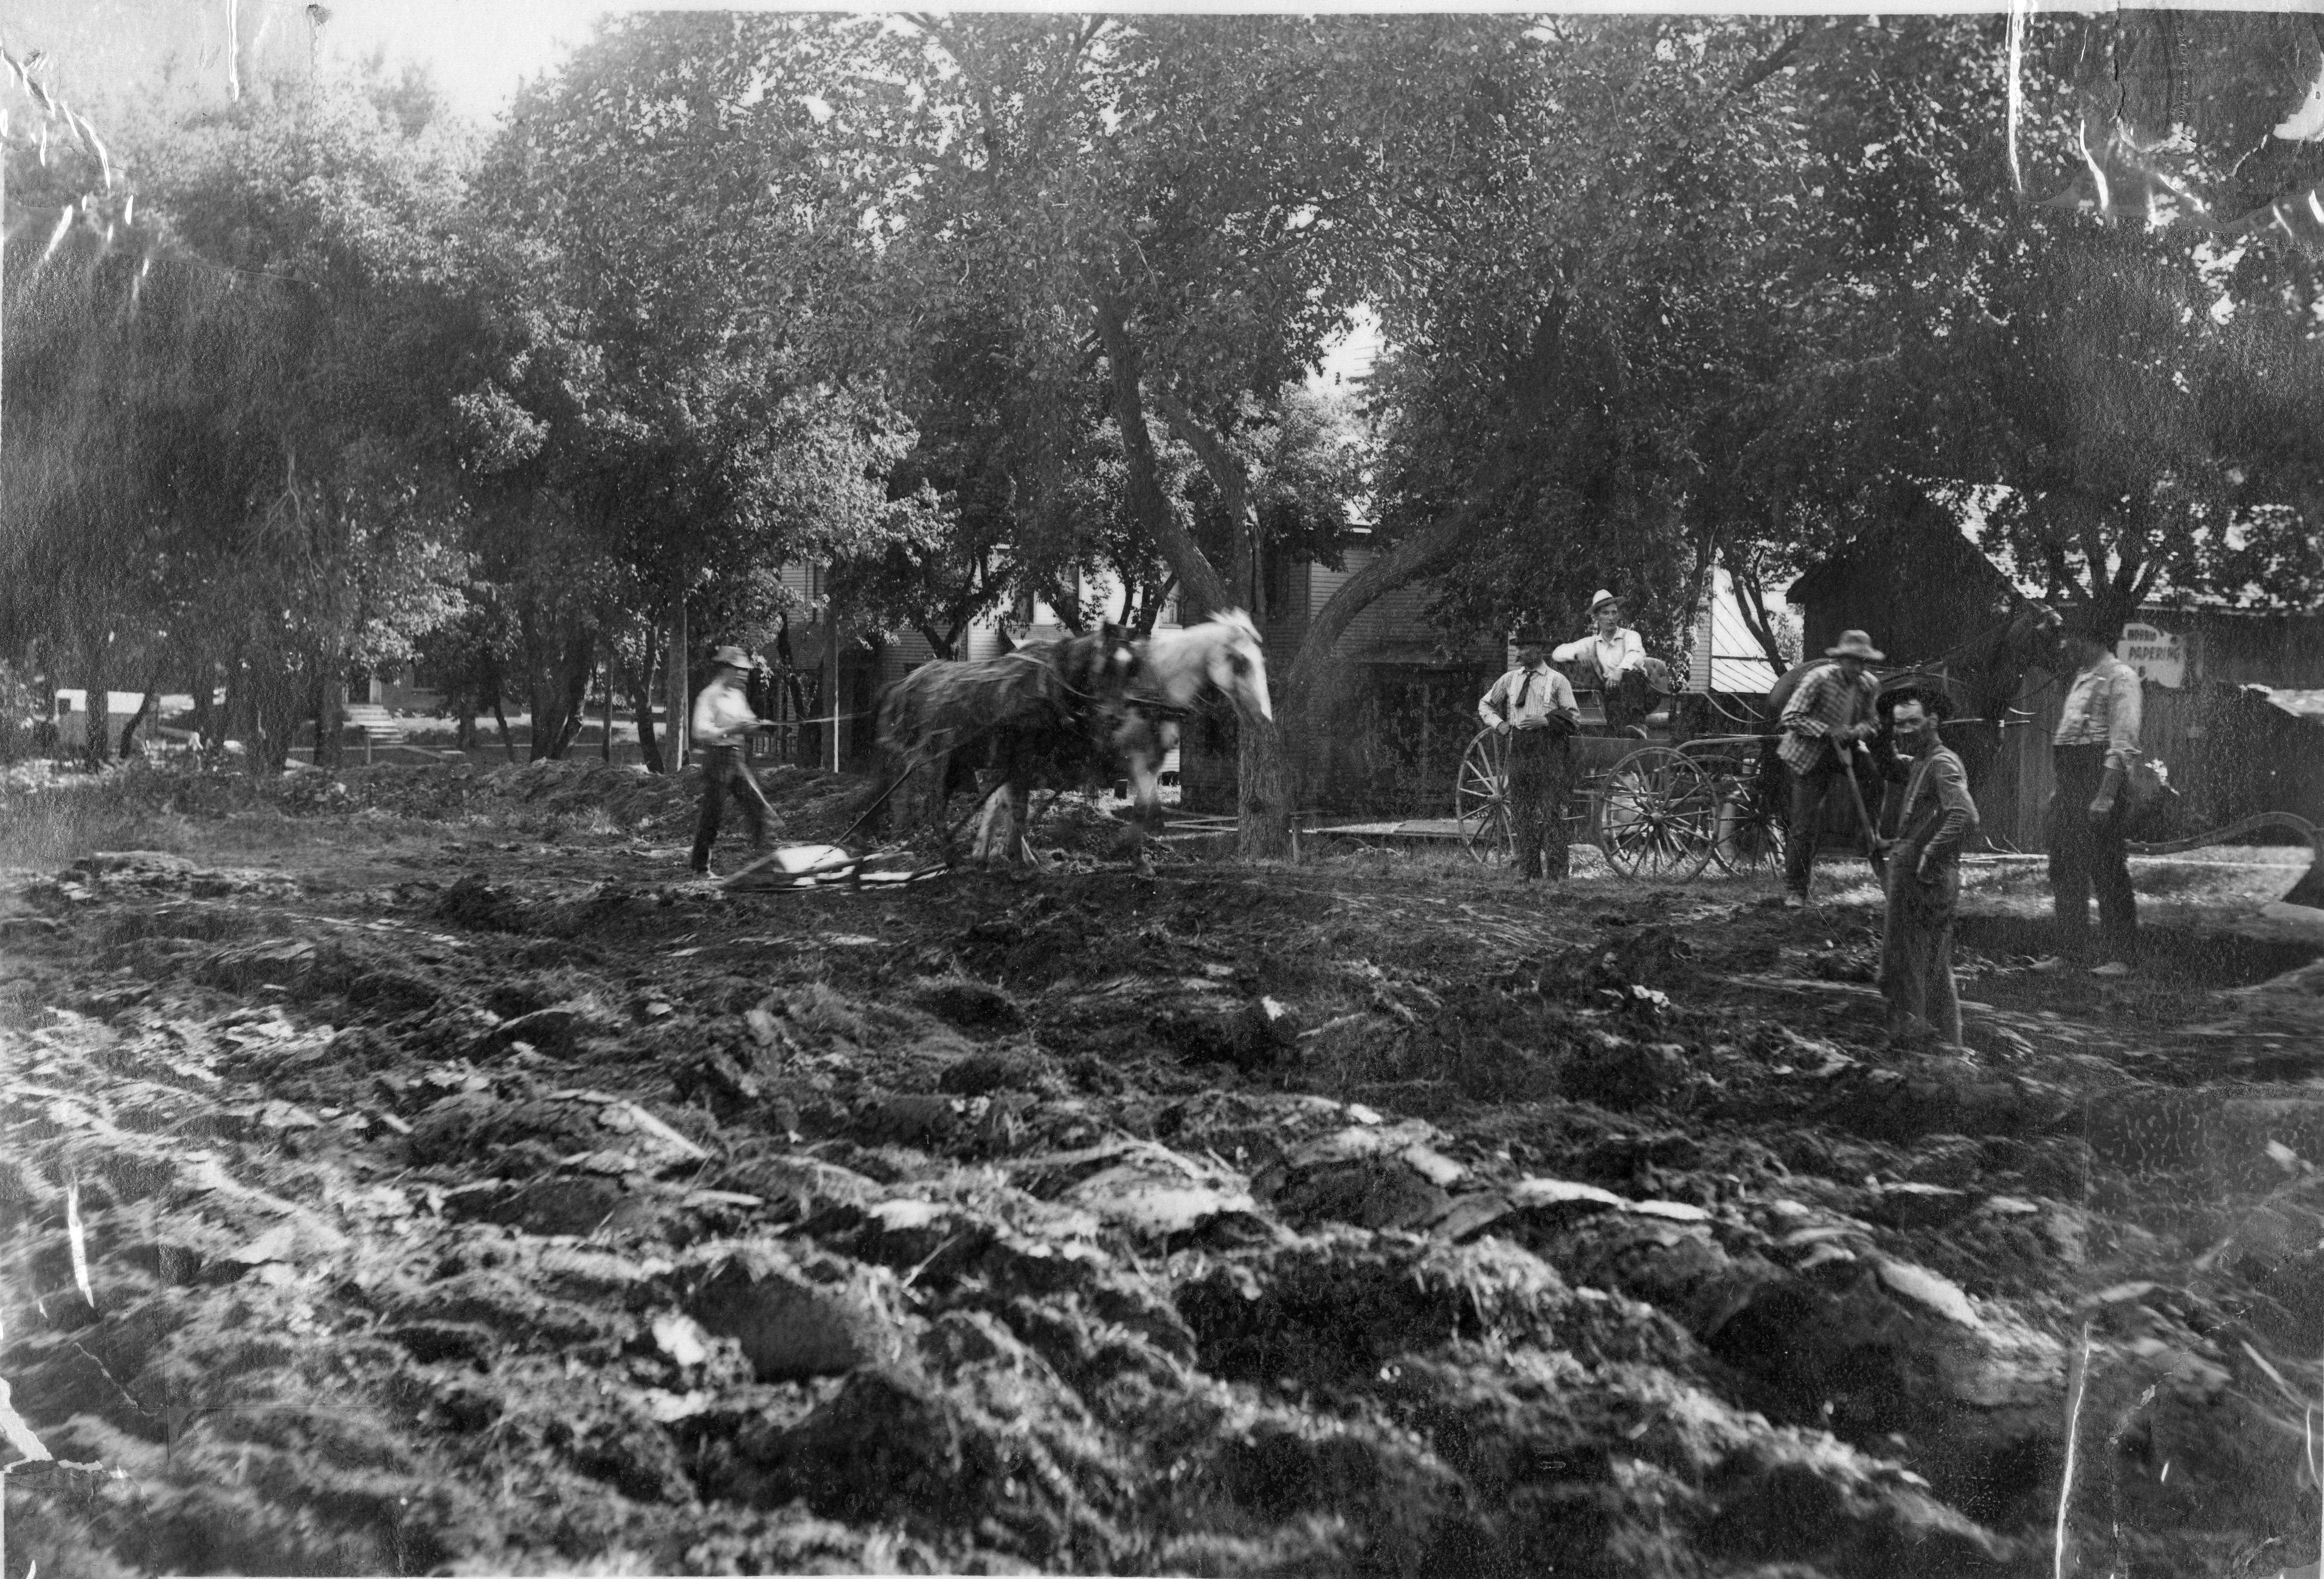 Horses and workers preparing the ground for construction, with move of the ground torn up